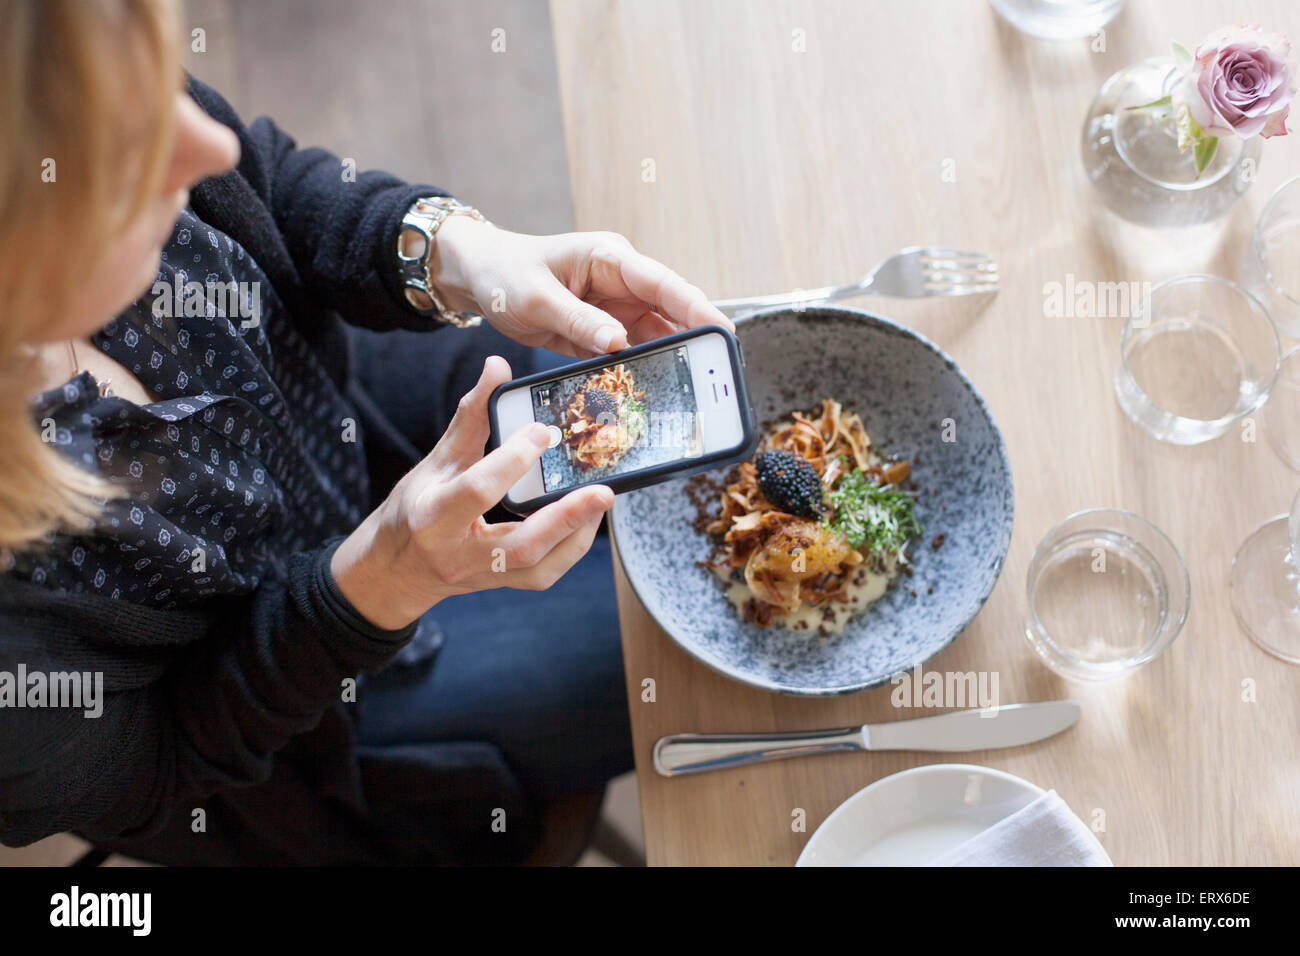 High angle view of woman photographing food through mobile phone in restaurant - Stock Image